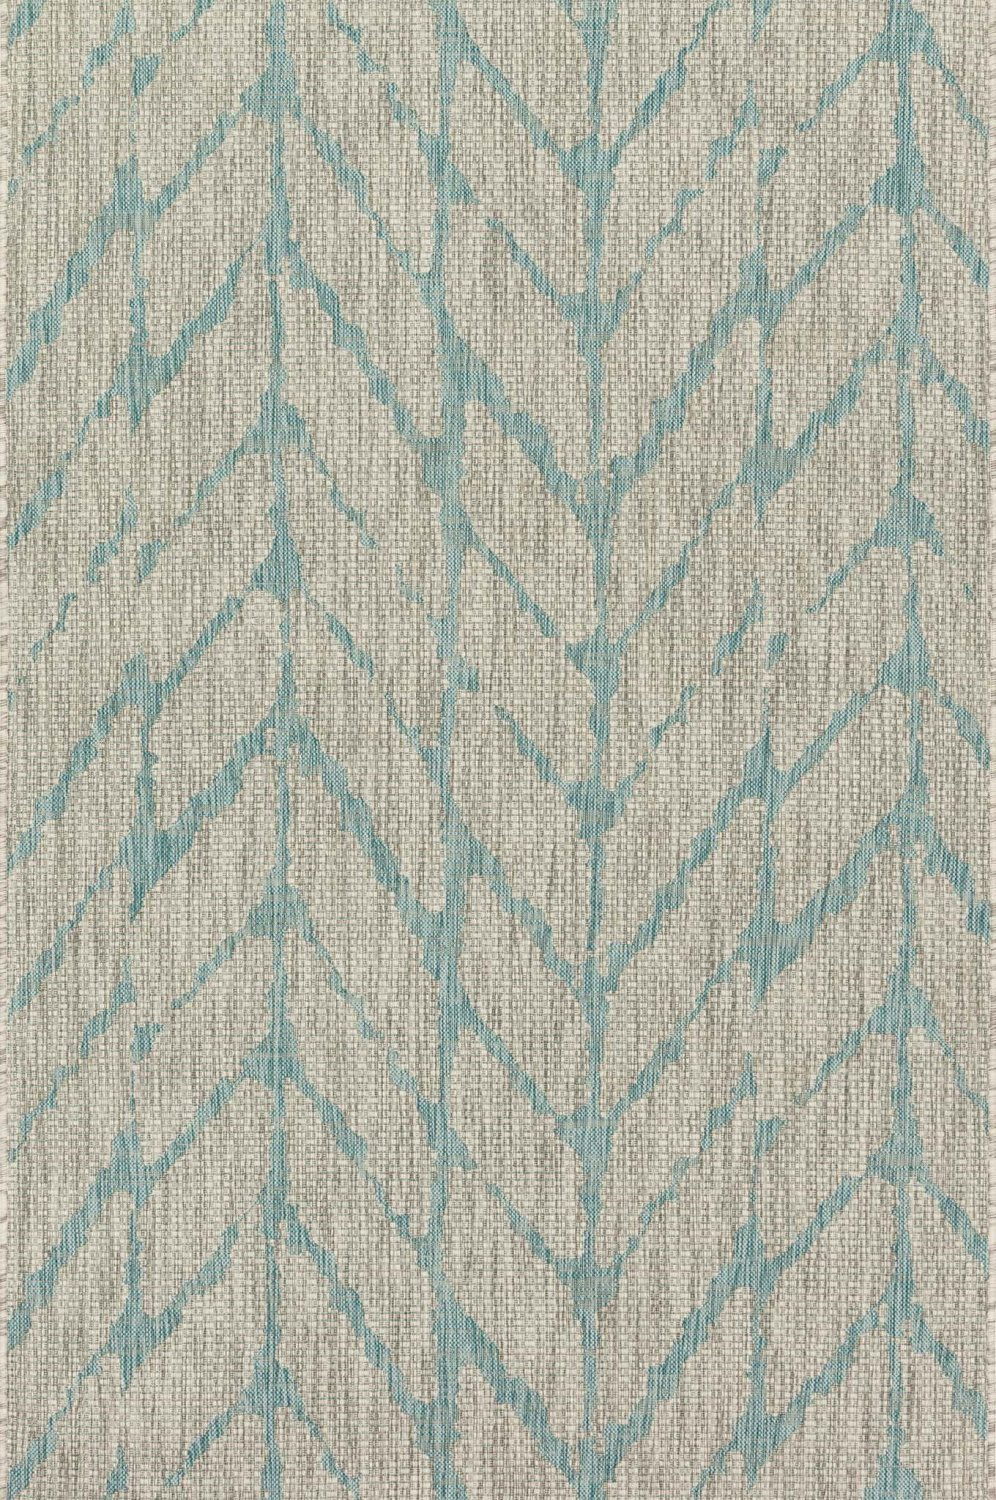 Loloi Isleie Rug 5 x 7 $139.00 on Amazon.